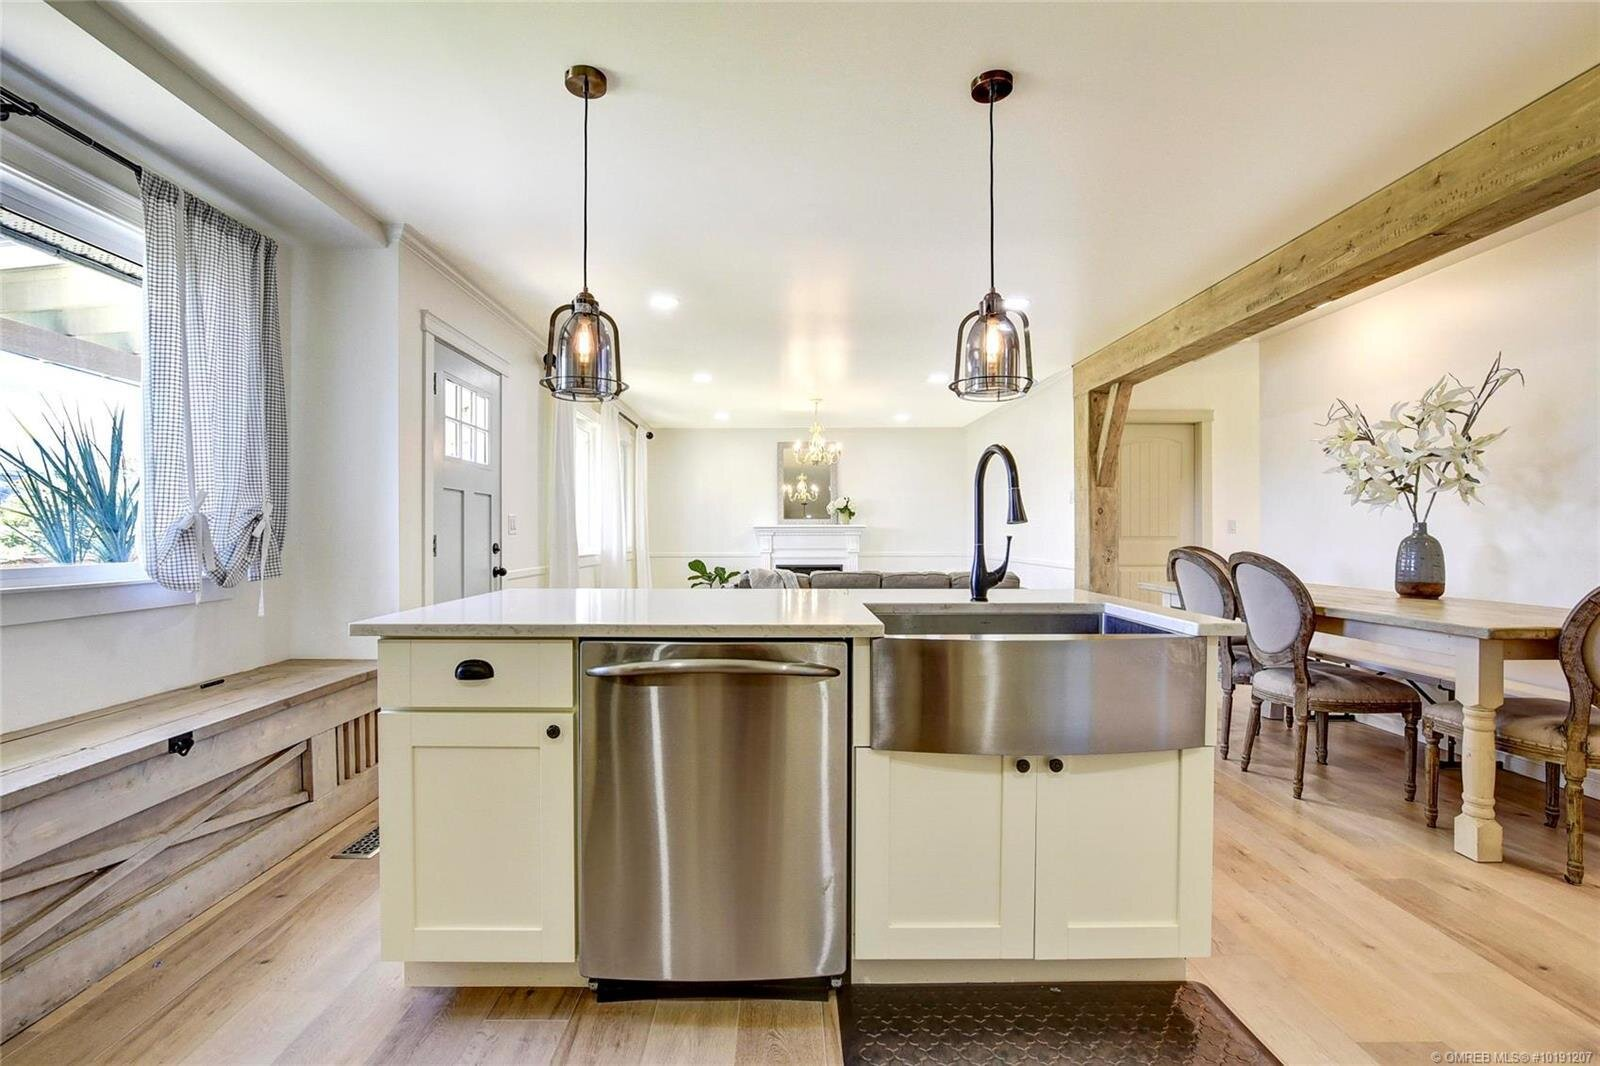 505-hollywood-road-south-farmhouse-inspired-family-home-kelowna-rutland-kitchen-island.jpg